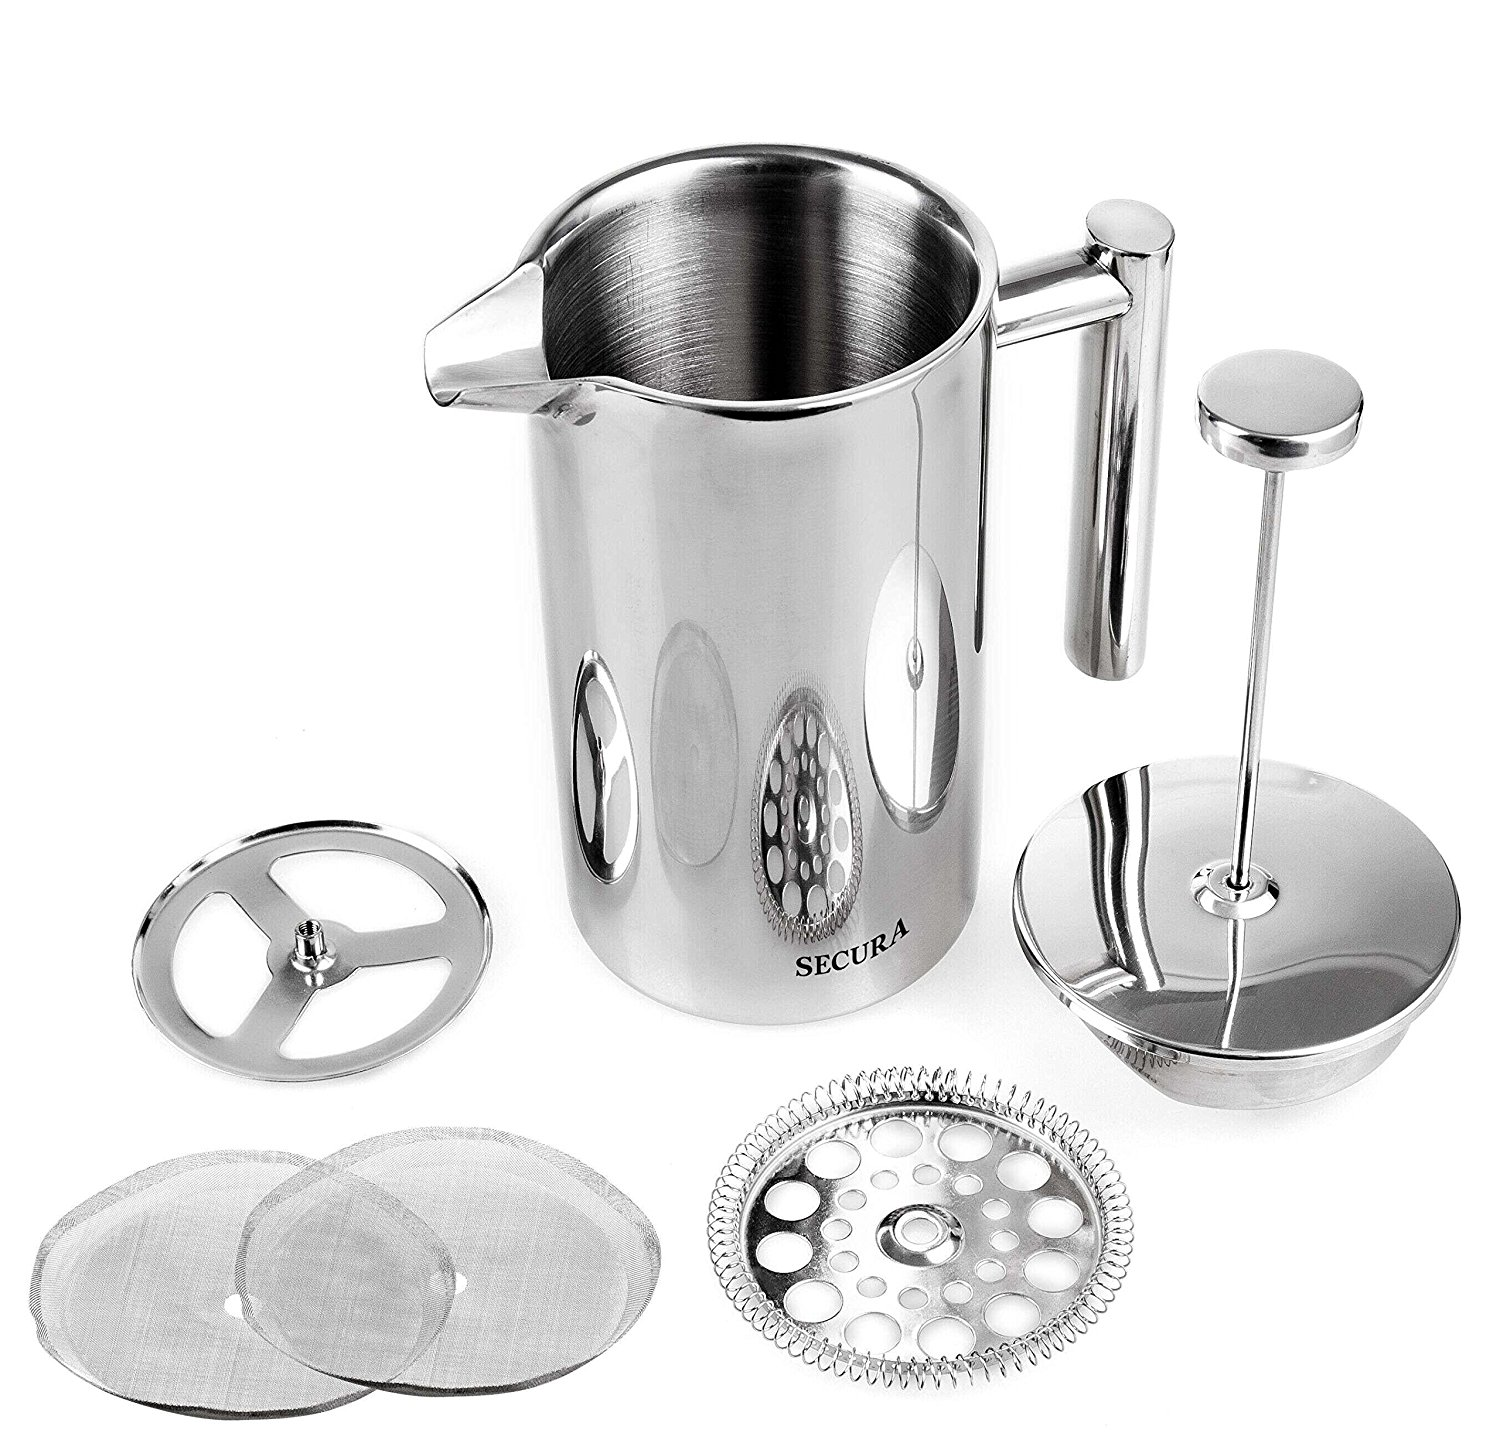 Secura SFP-34DS Stainless Steel French Coffee Press